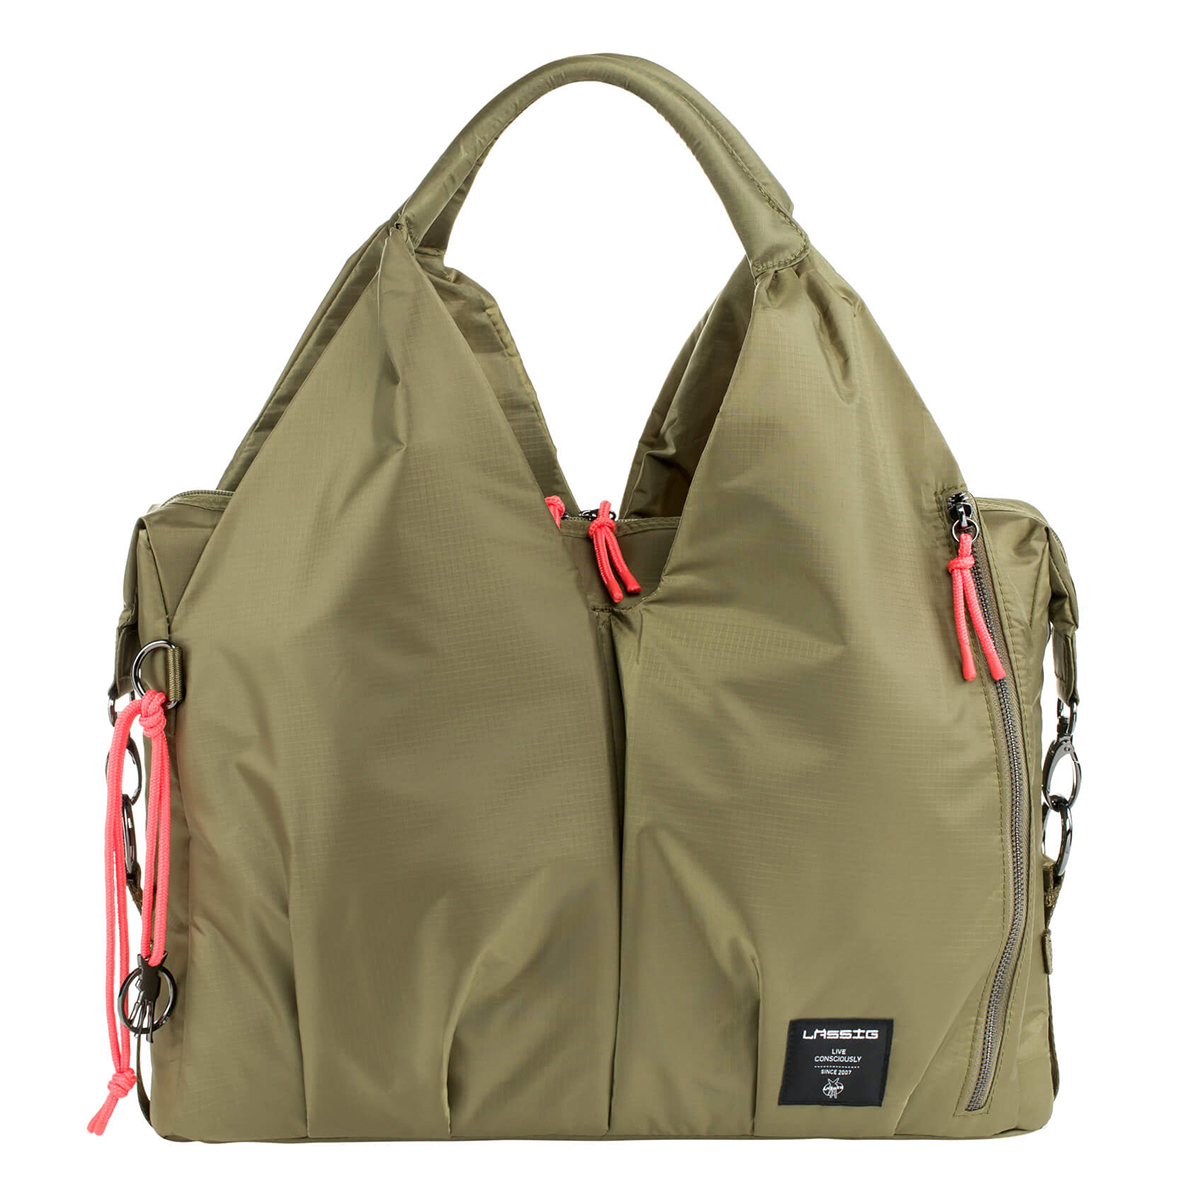 Sac à langer Sac à Langer Neckline Pop Green Label - Olive Sac à Langer Neckline Pop Green Label - Olive